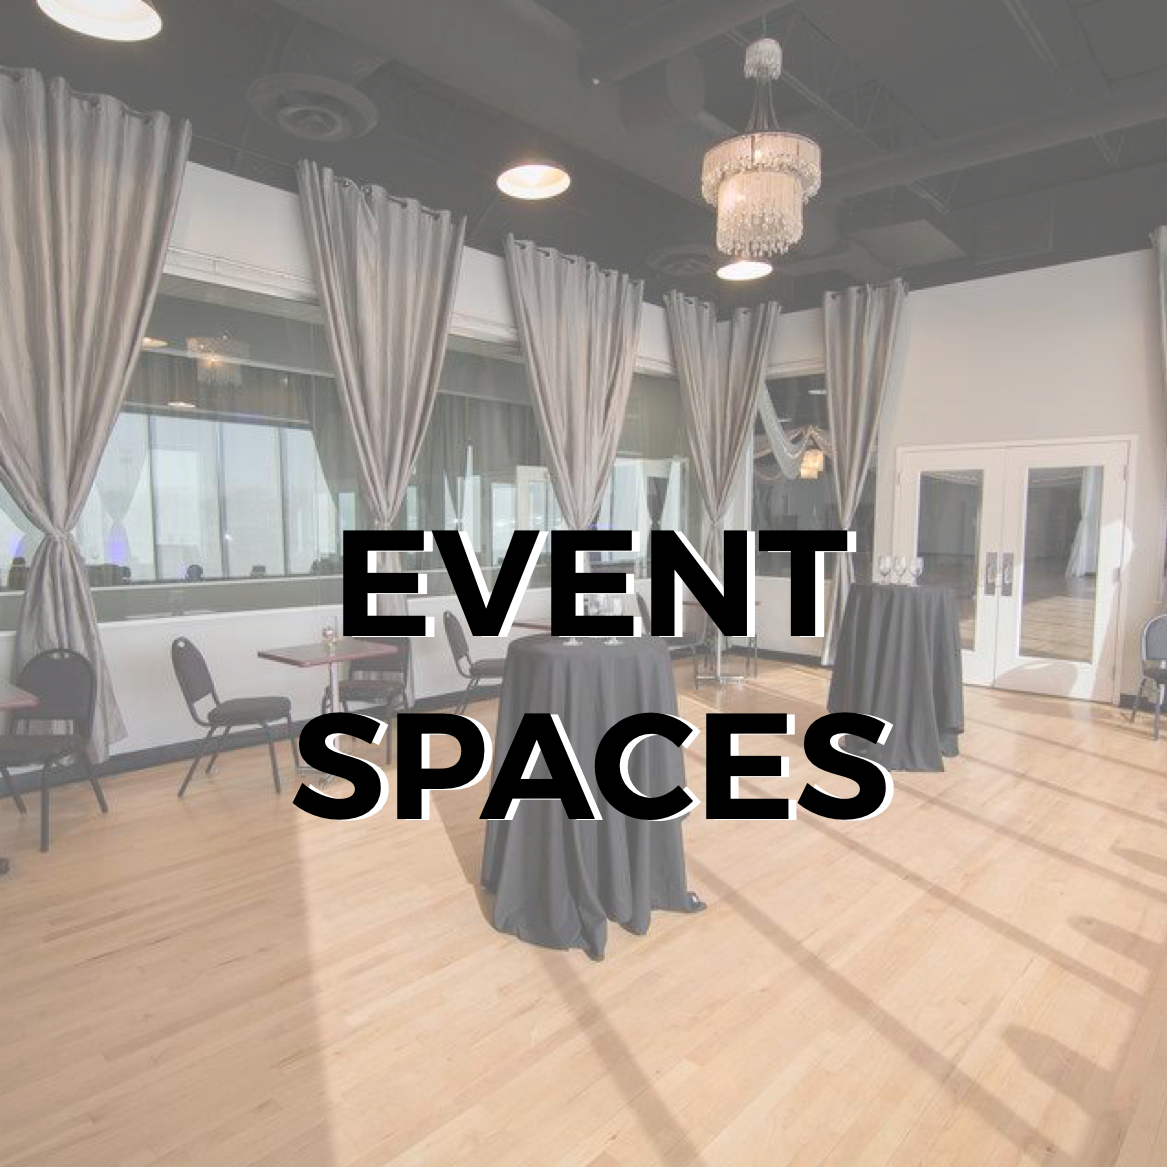 With over 14,000 square feet of space and 5 distinct spaces, our versatile venue gives you plenty of options for imaginative themed layouts and the ability to craft specific needs and details for your special event.   SEE MORE DETAILS >>